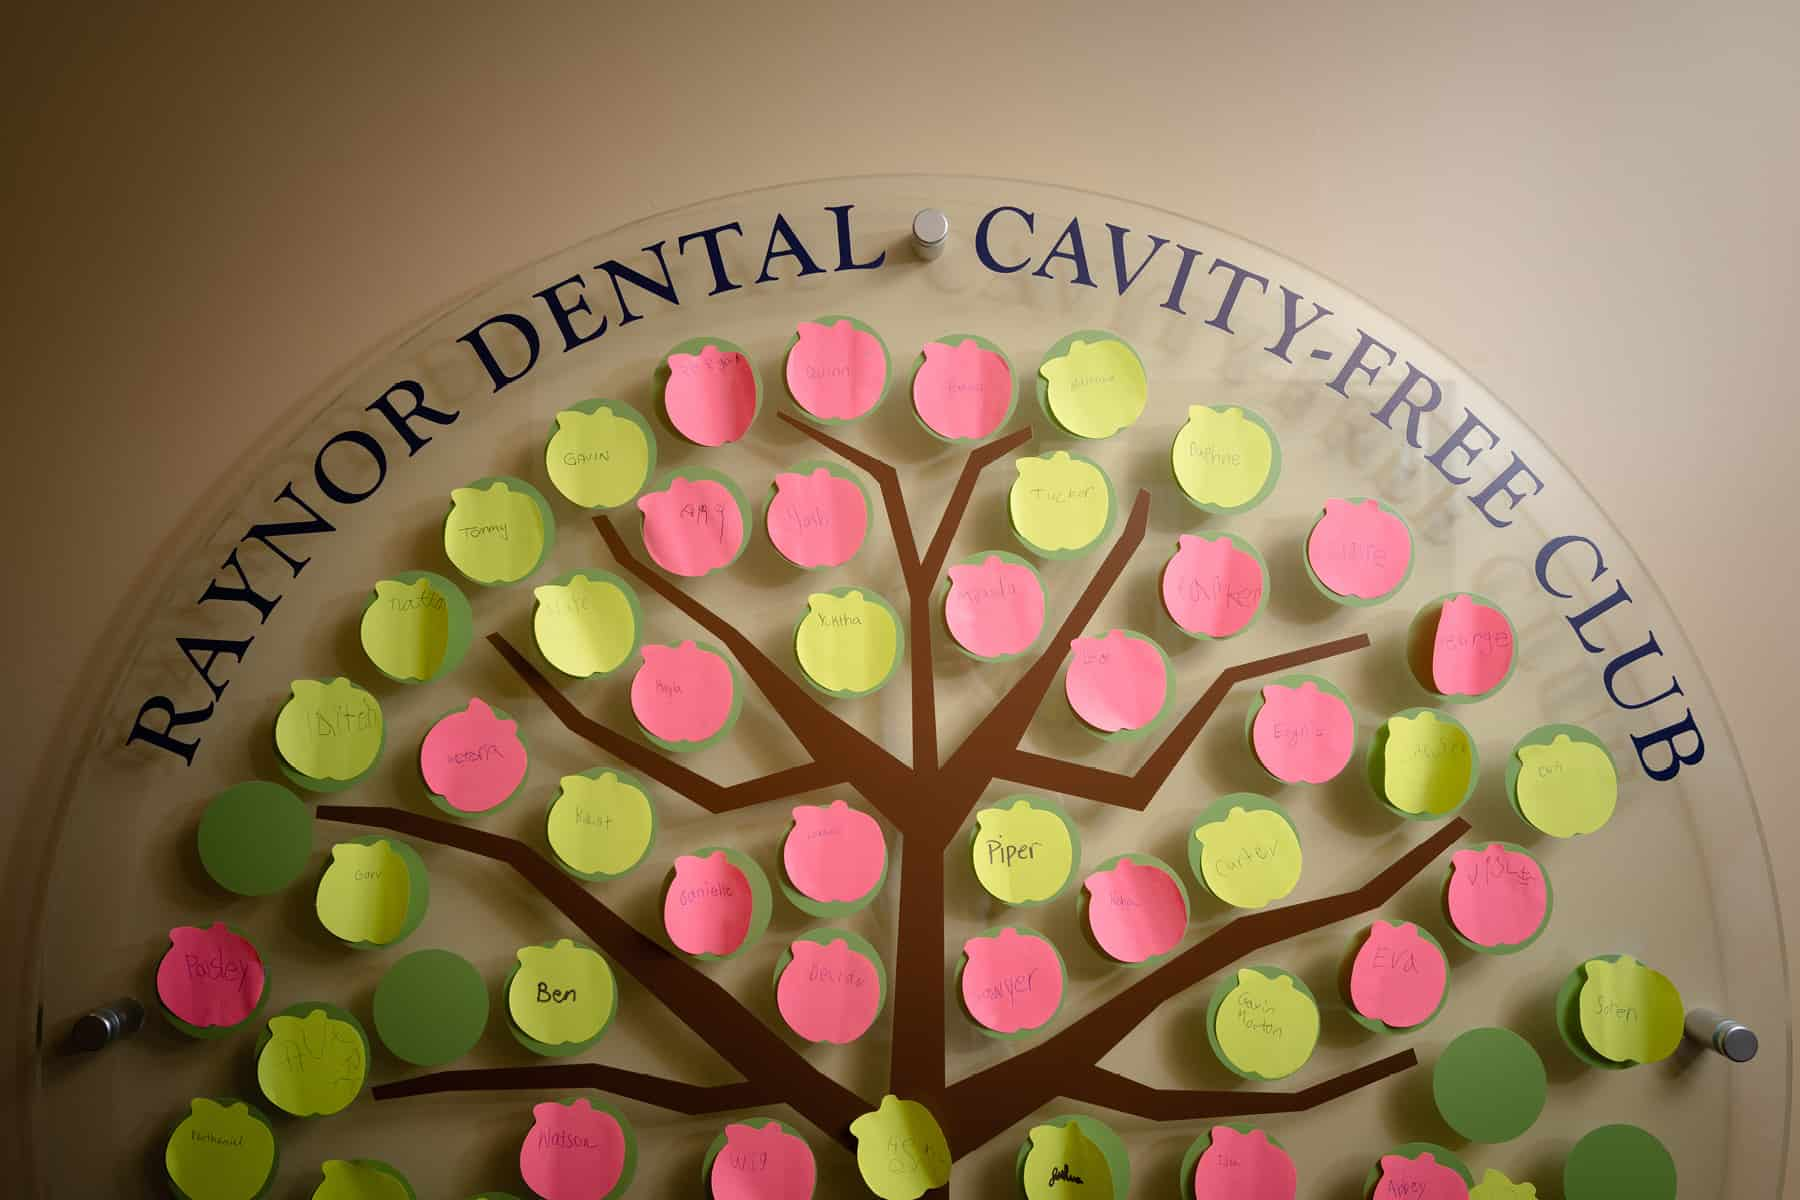 Cavity Free Club on wall in Keene